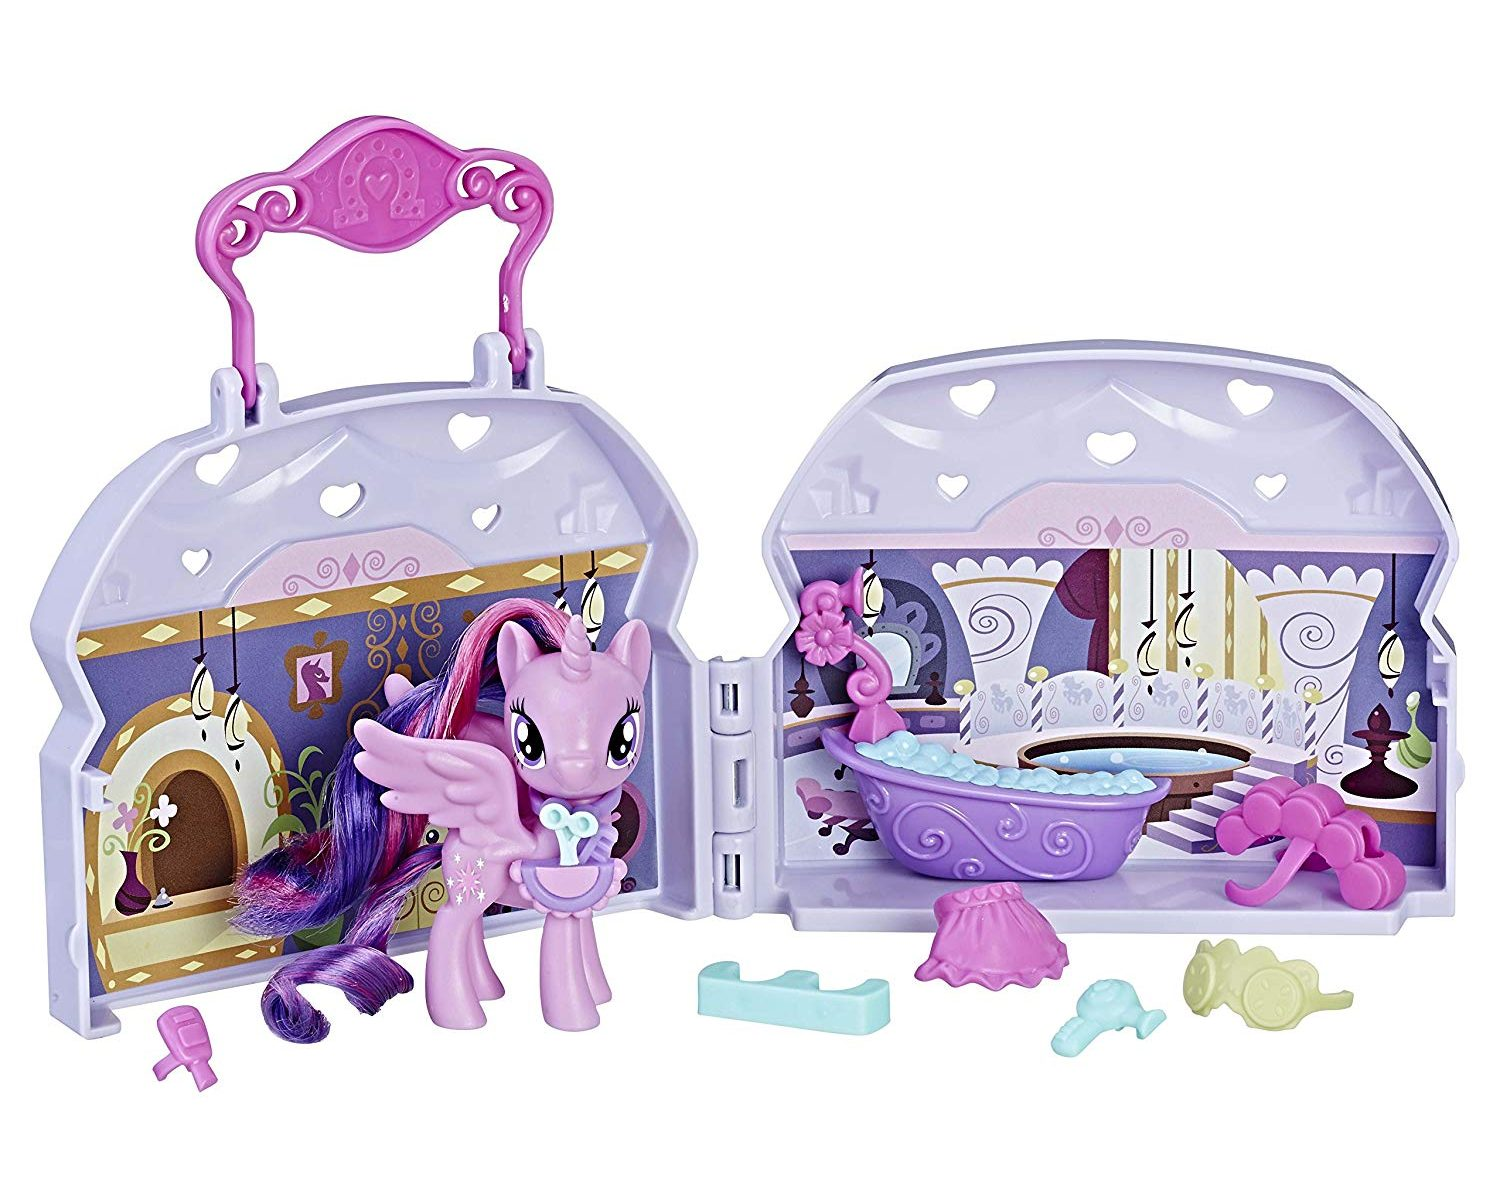 MLP: TM Princess Twilight Sparkle Canterlot Spa Set 2